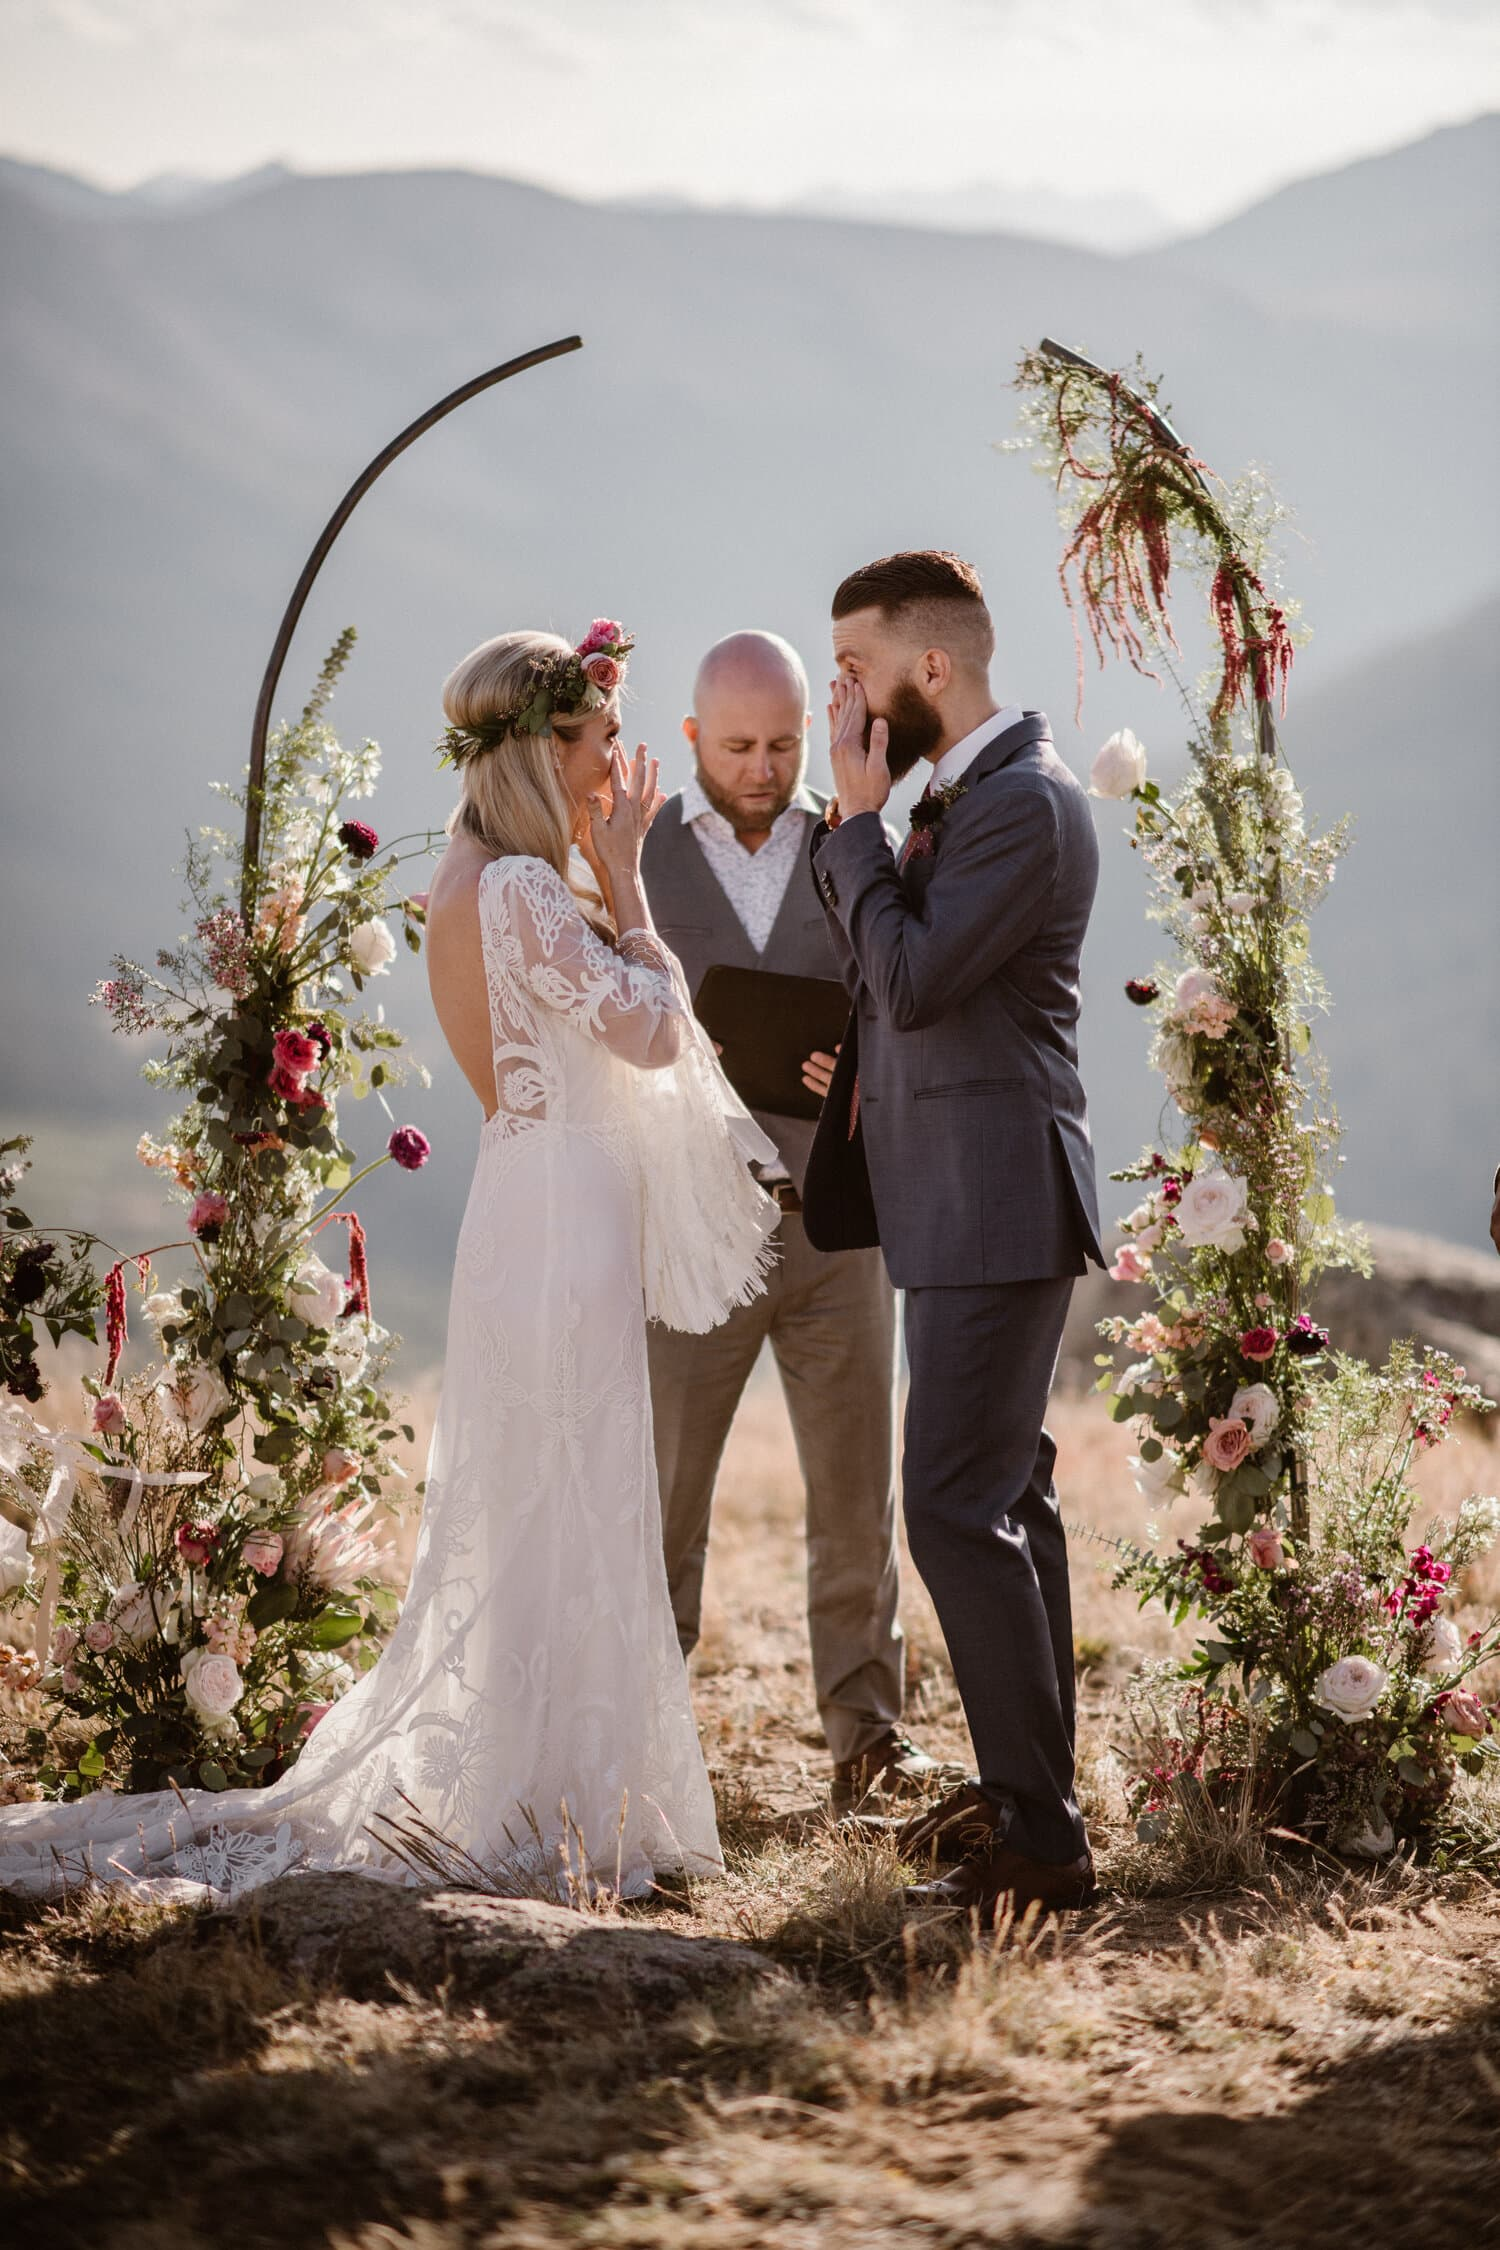 Bride and groom standing in front of a floral arch during their elopement ceremony.